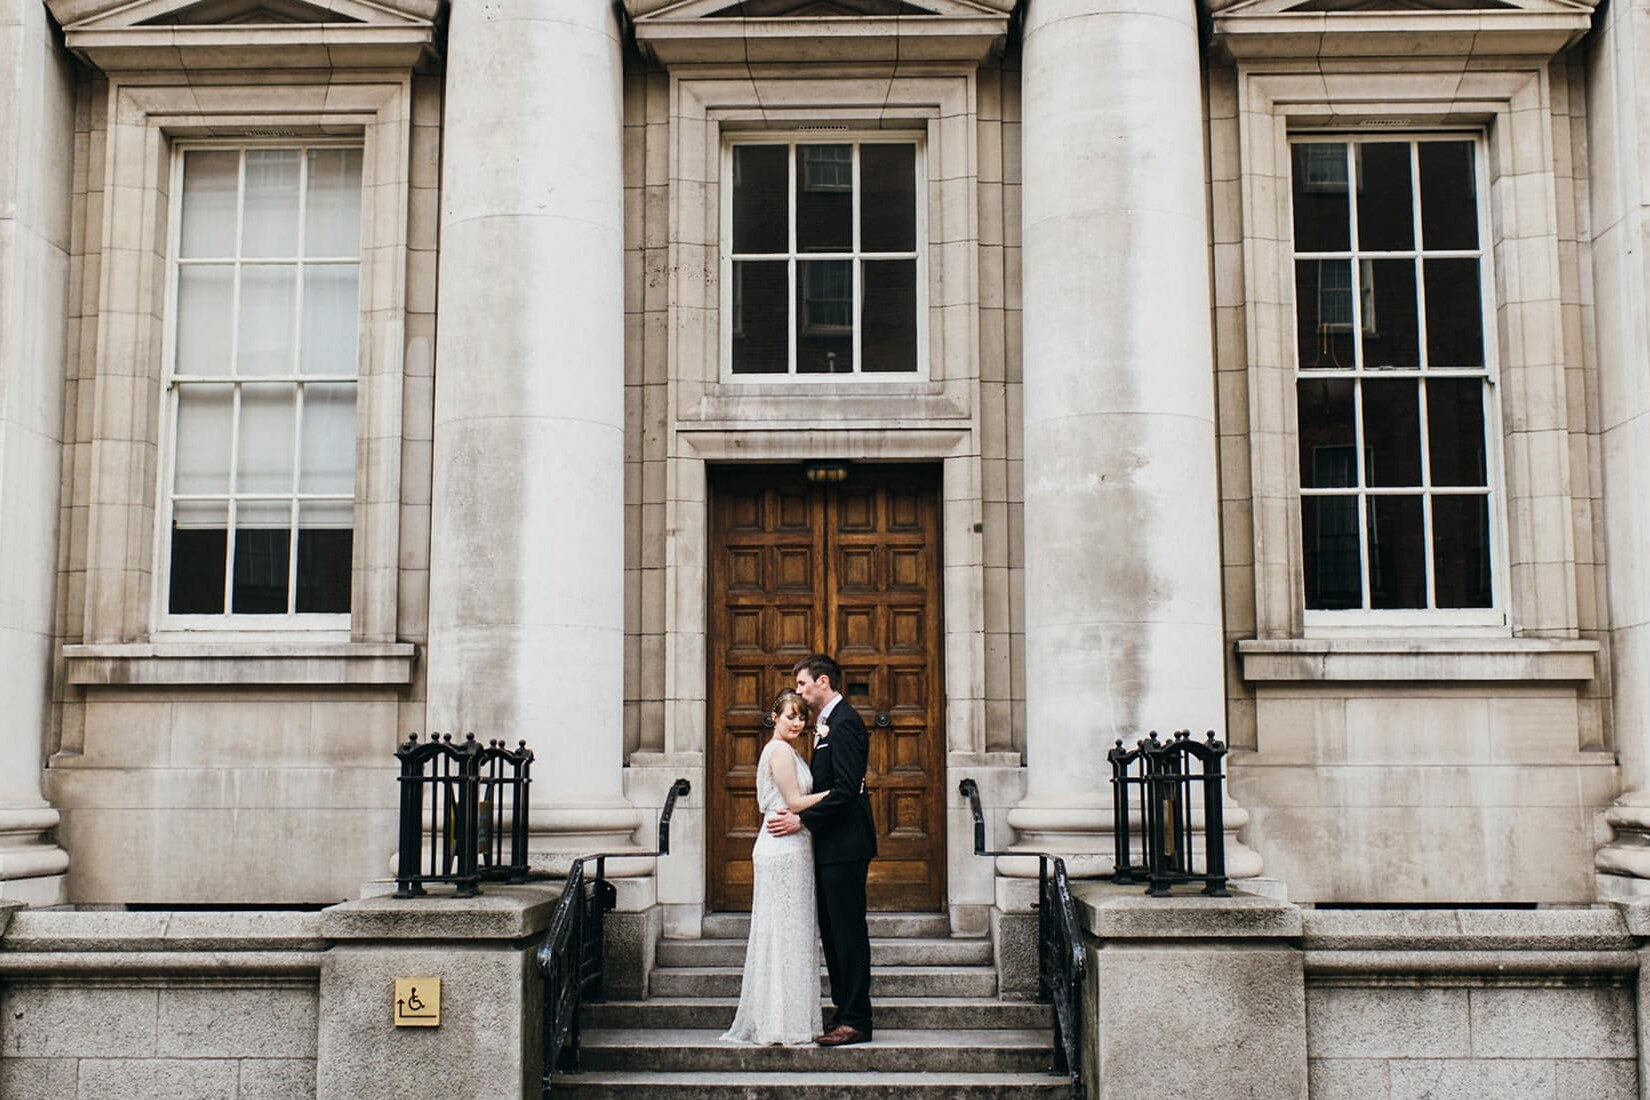 elope to Ireland to get married at Merrion Hotel in Dublin city